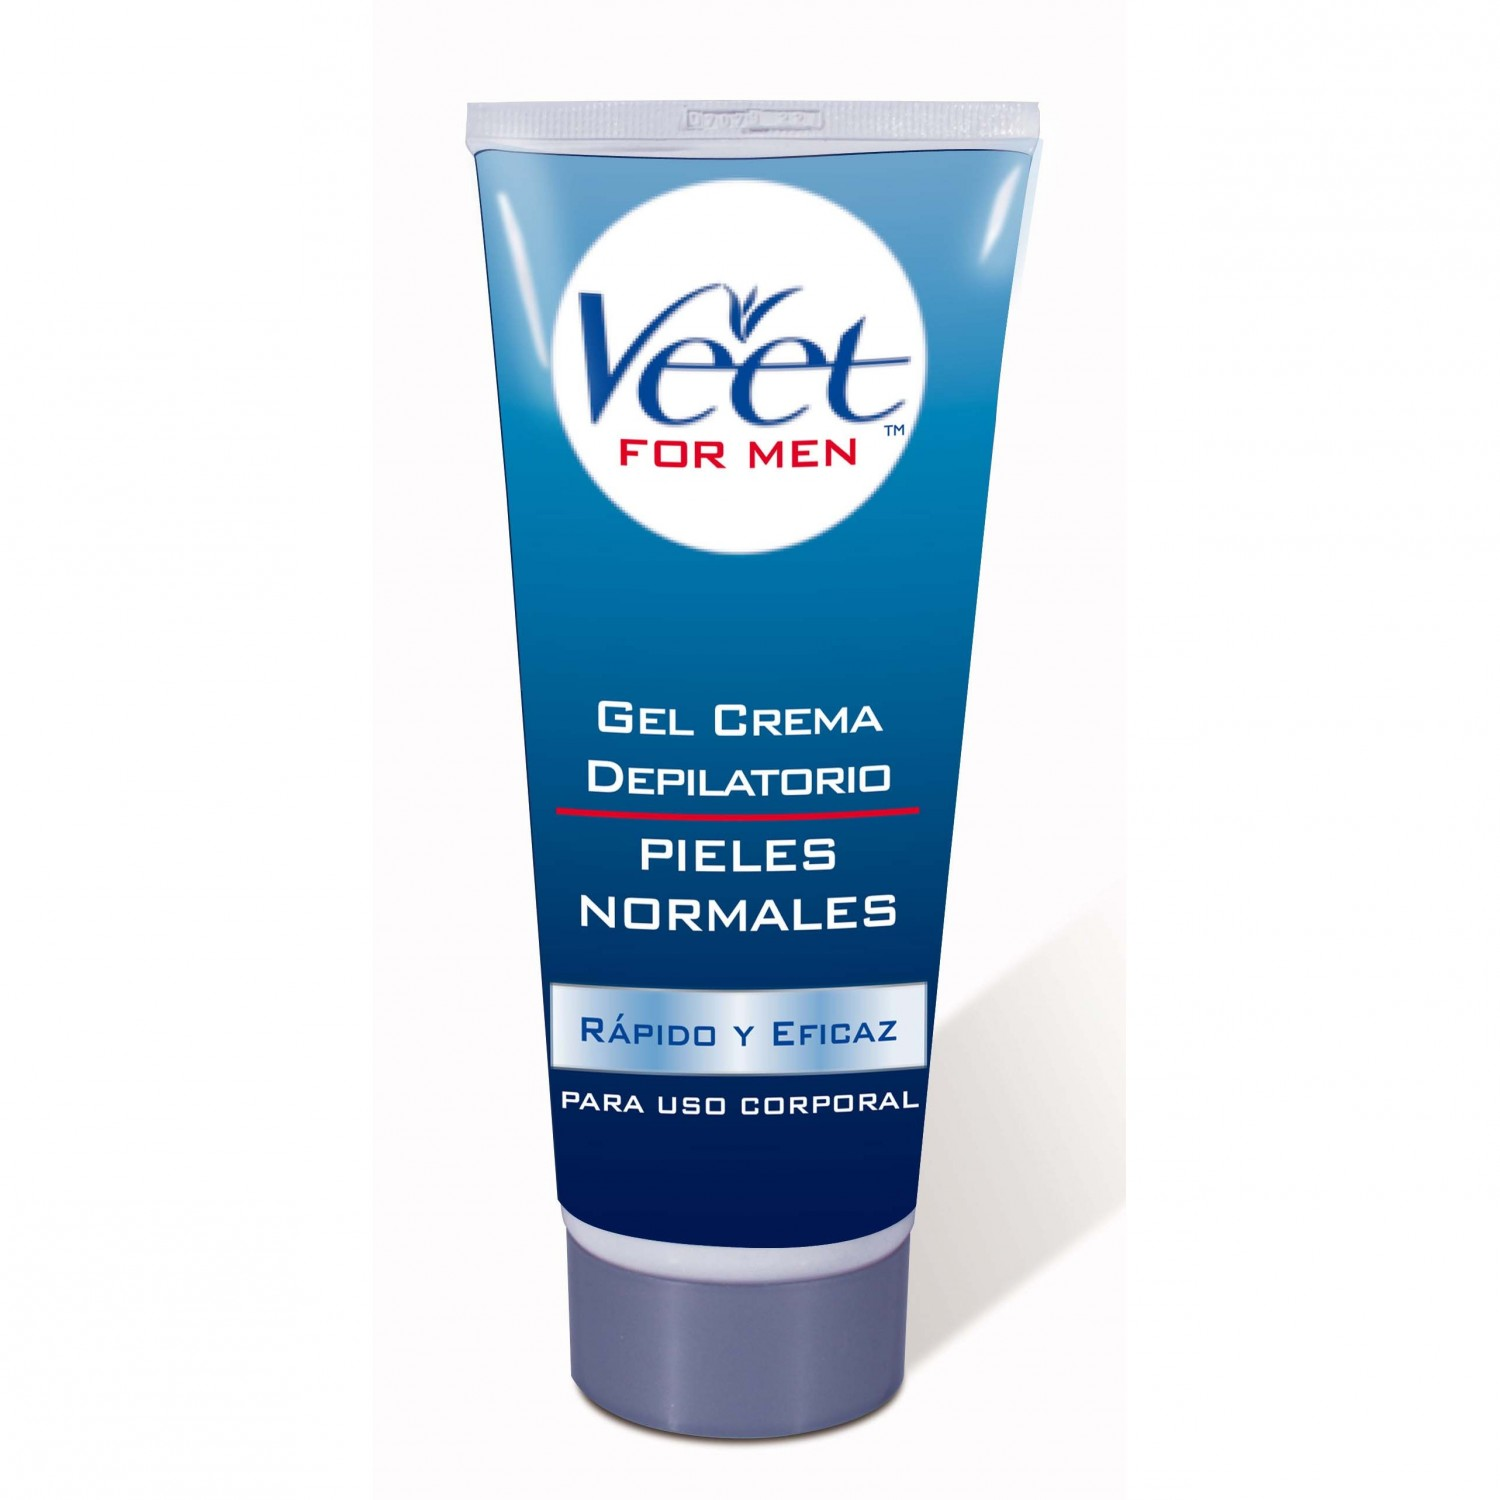 Veet gel crema depilatorio piel normal uso corporal tubo de 20cl.